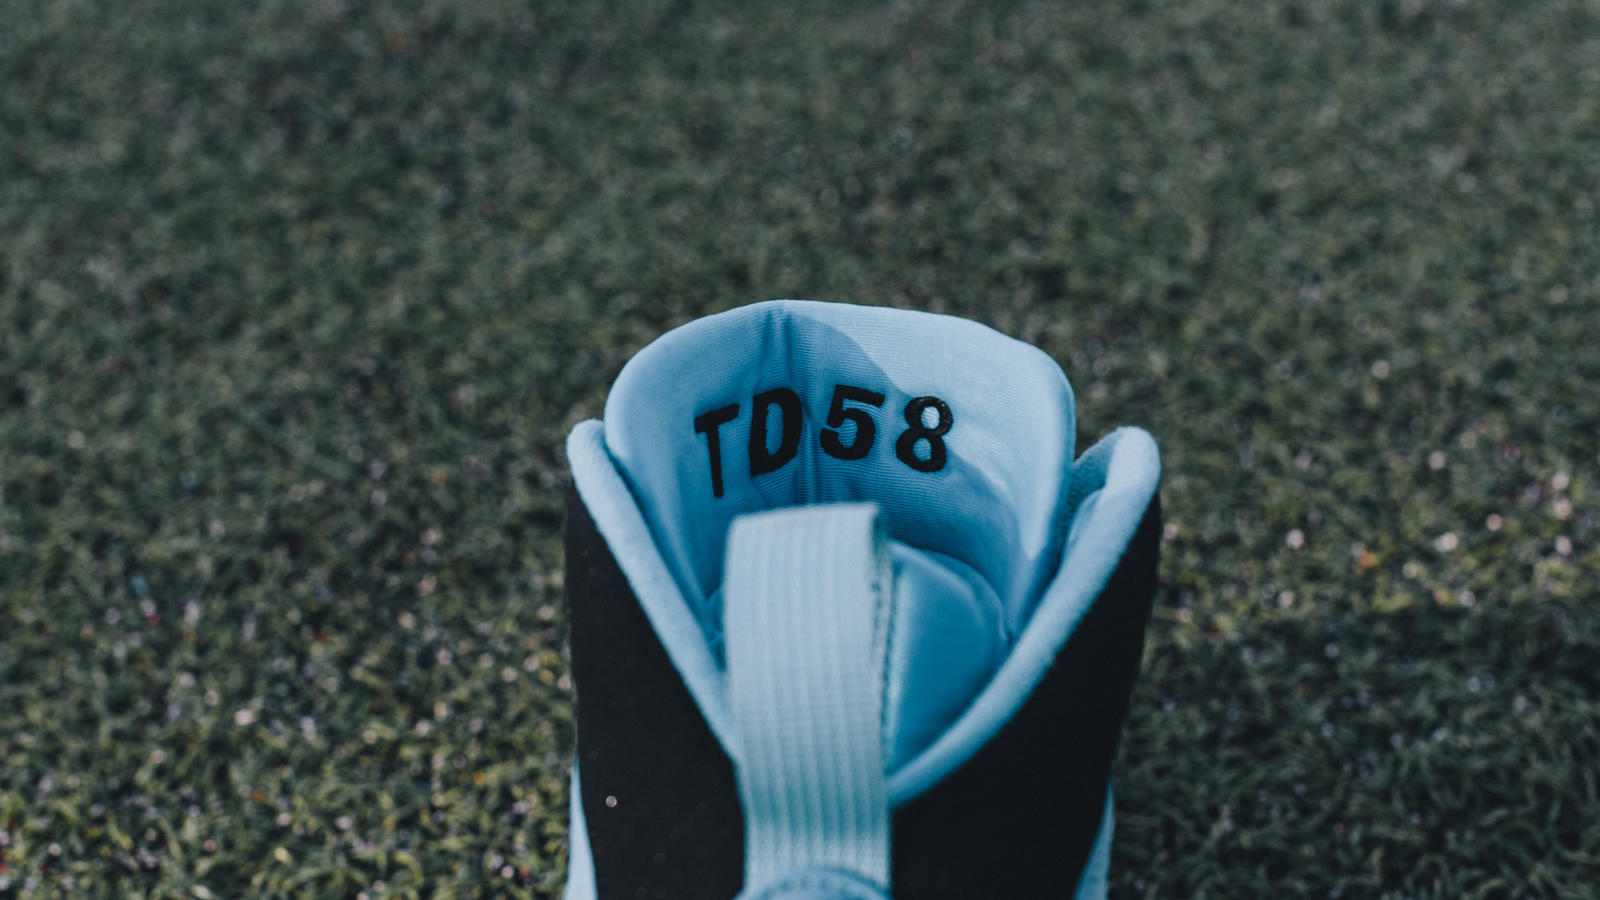 Thomas Davis Air Jordan IX PE Cleats